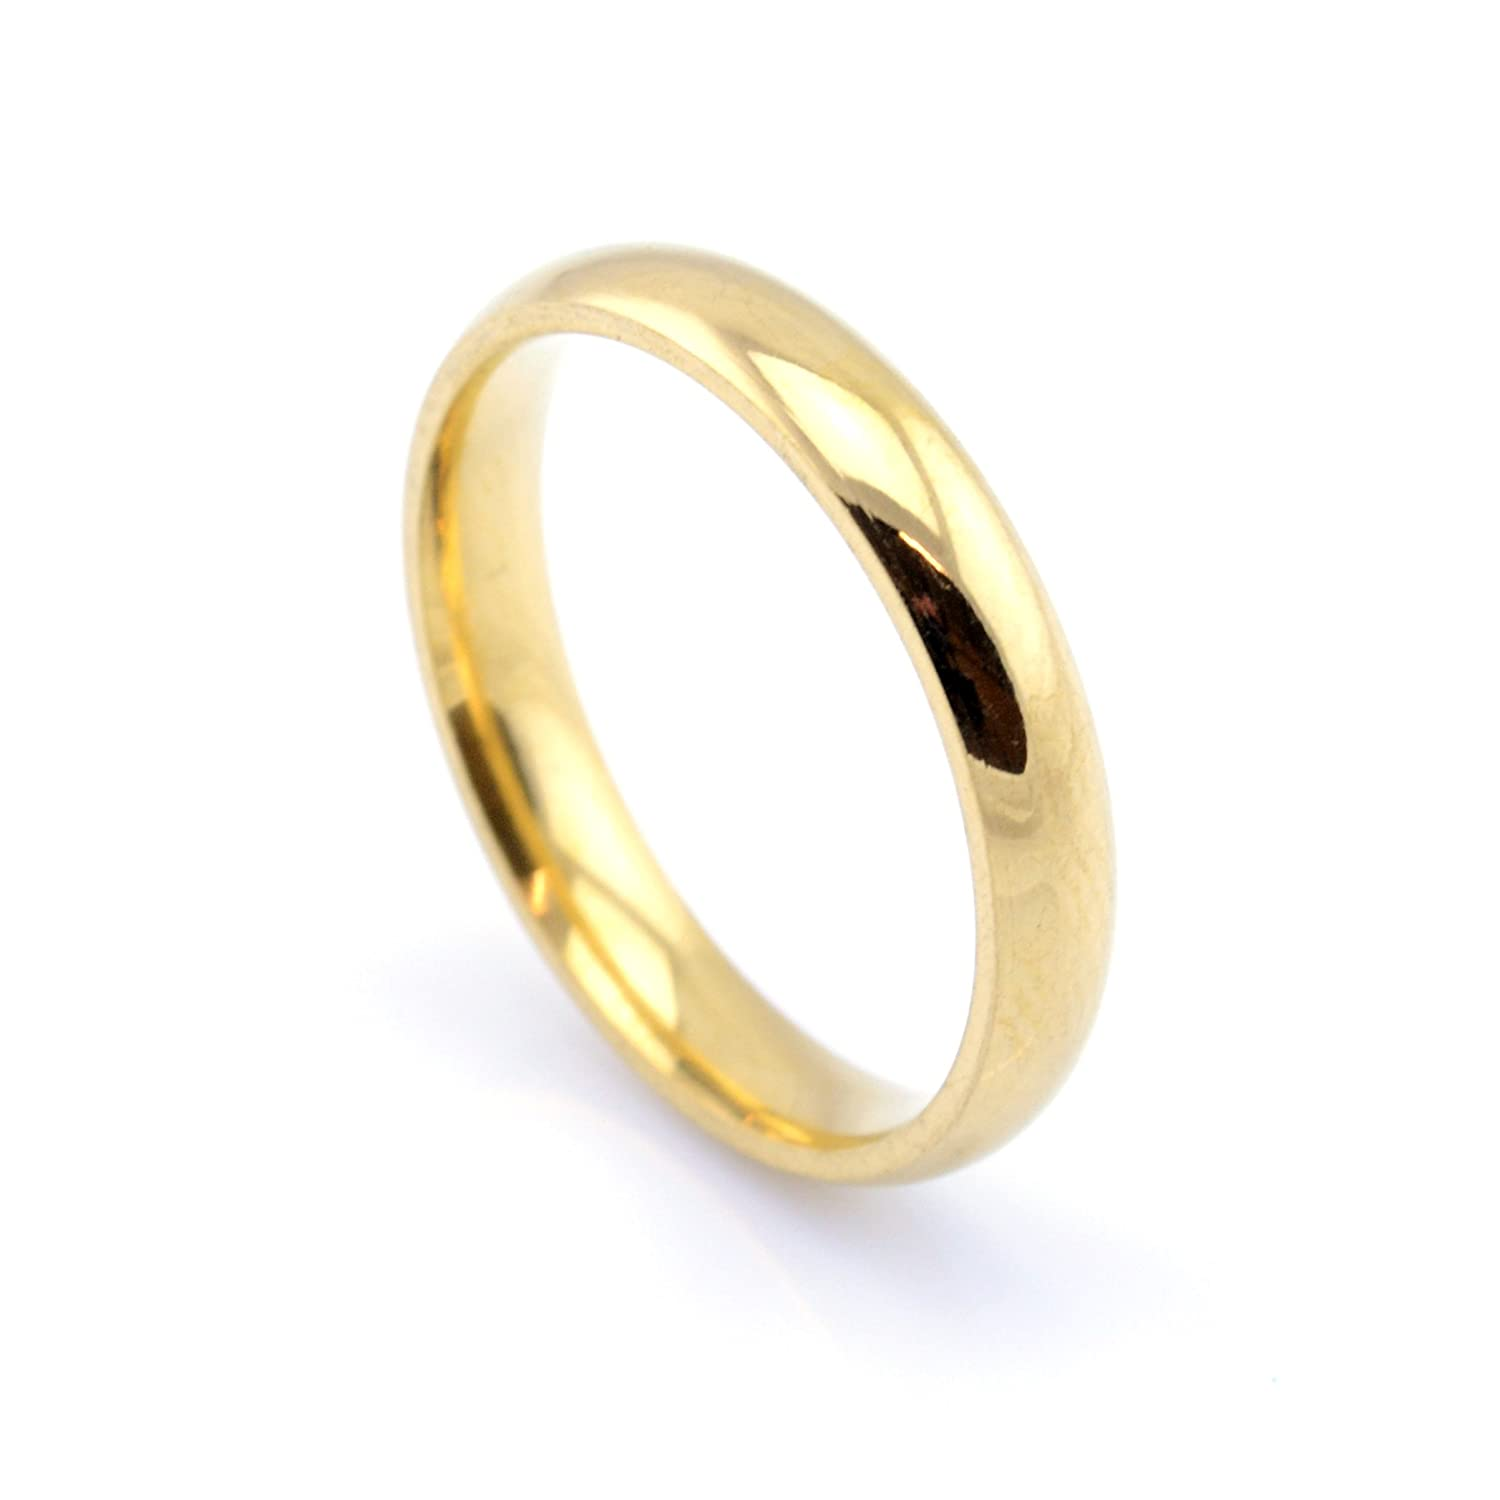 Vault 101 Limited 18k GOLD PLATED Men's Women's Stainless Steel Wedding Band Ring (4mm Wide) GOLDPLAINRING4MM1